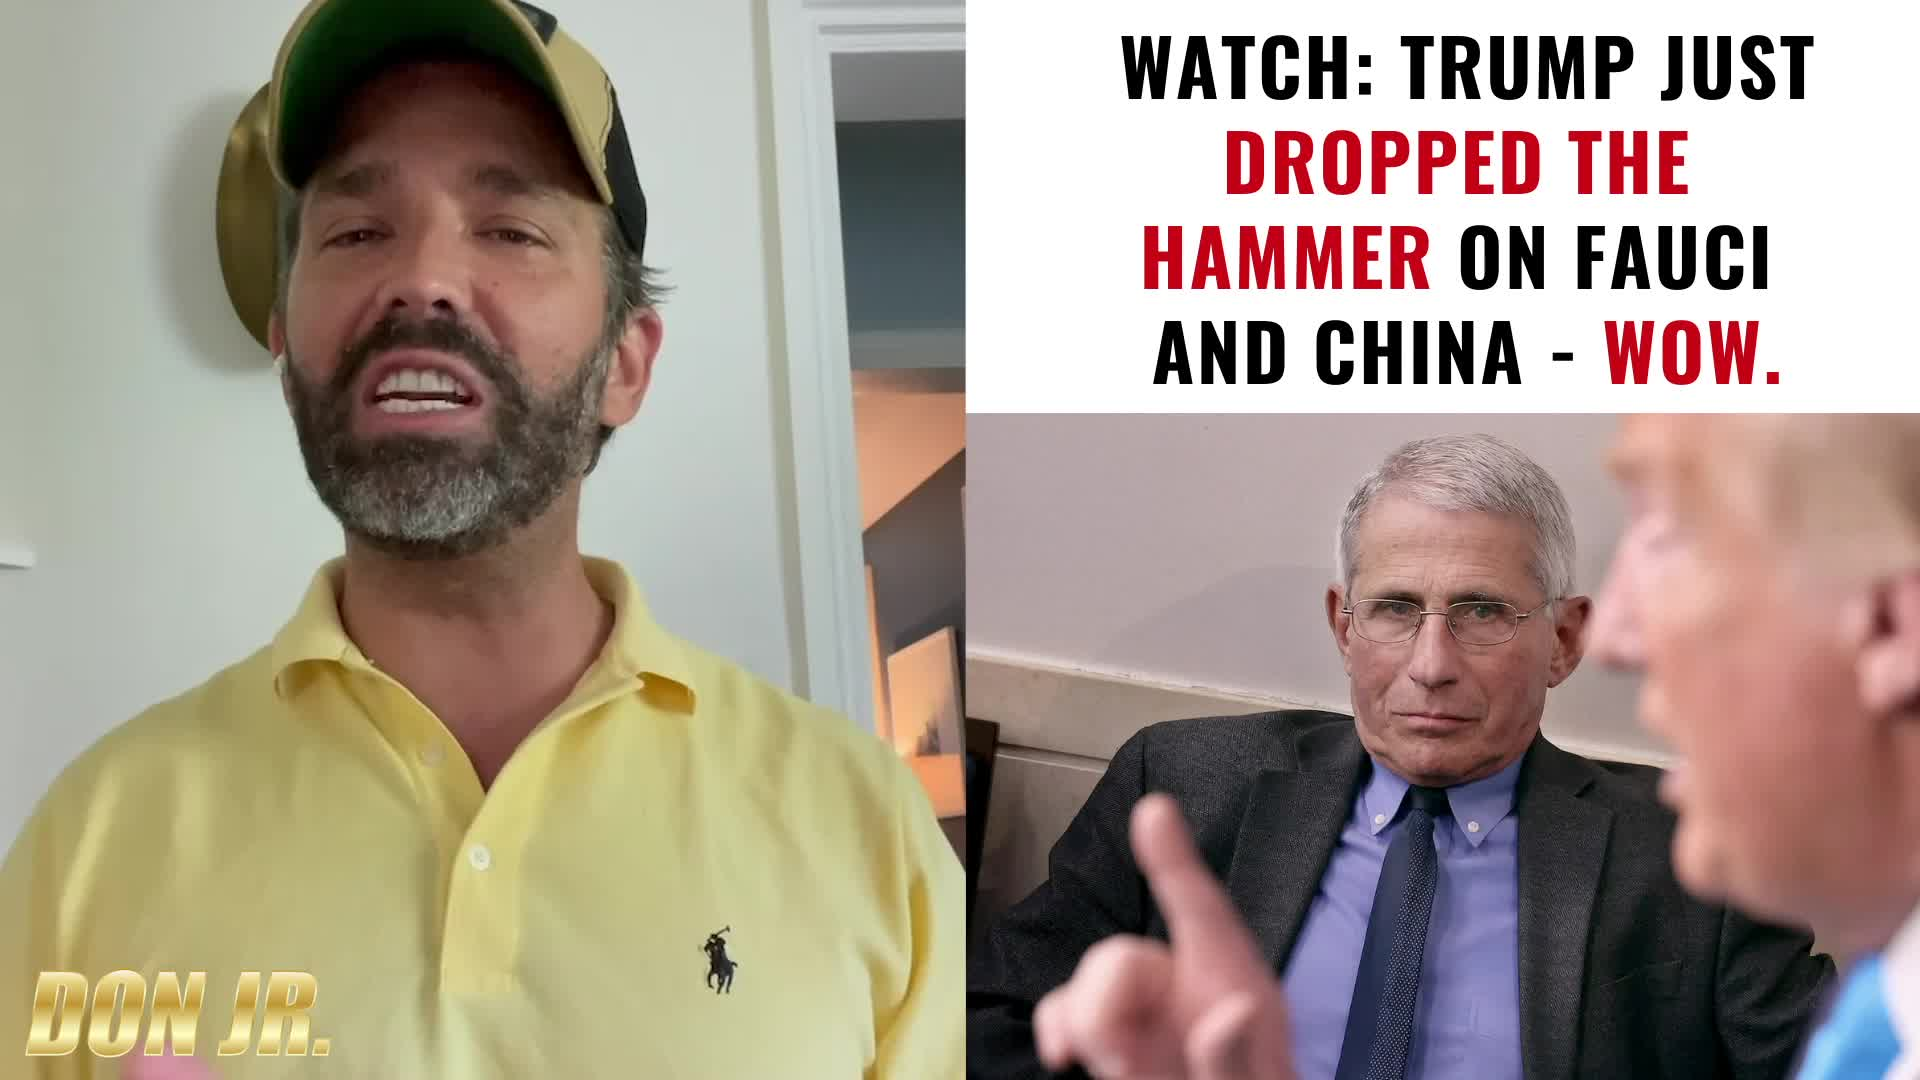 Breaking: Trump Just Dropped The Hammer On Fauci & China! - Donald Trump Jr. Must Video